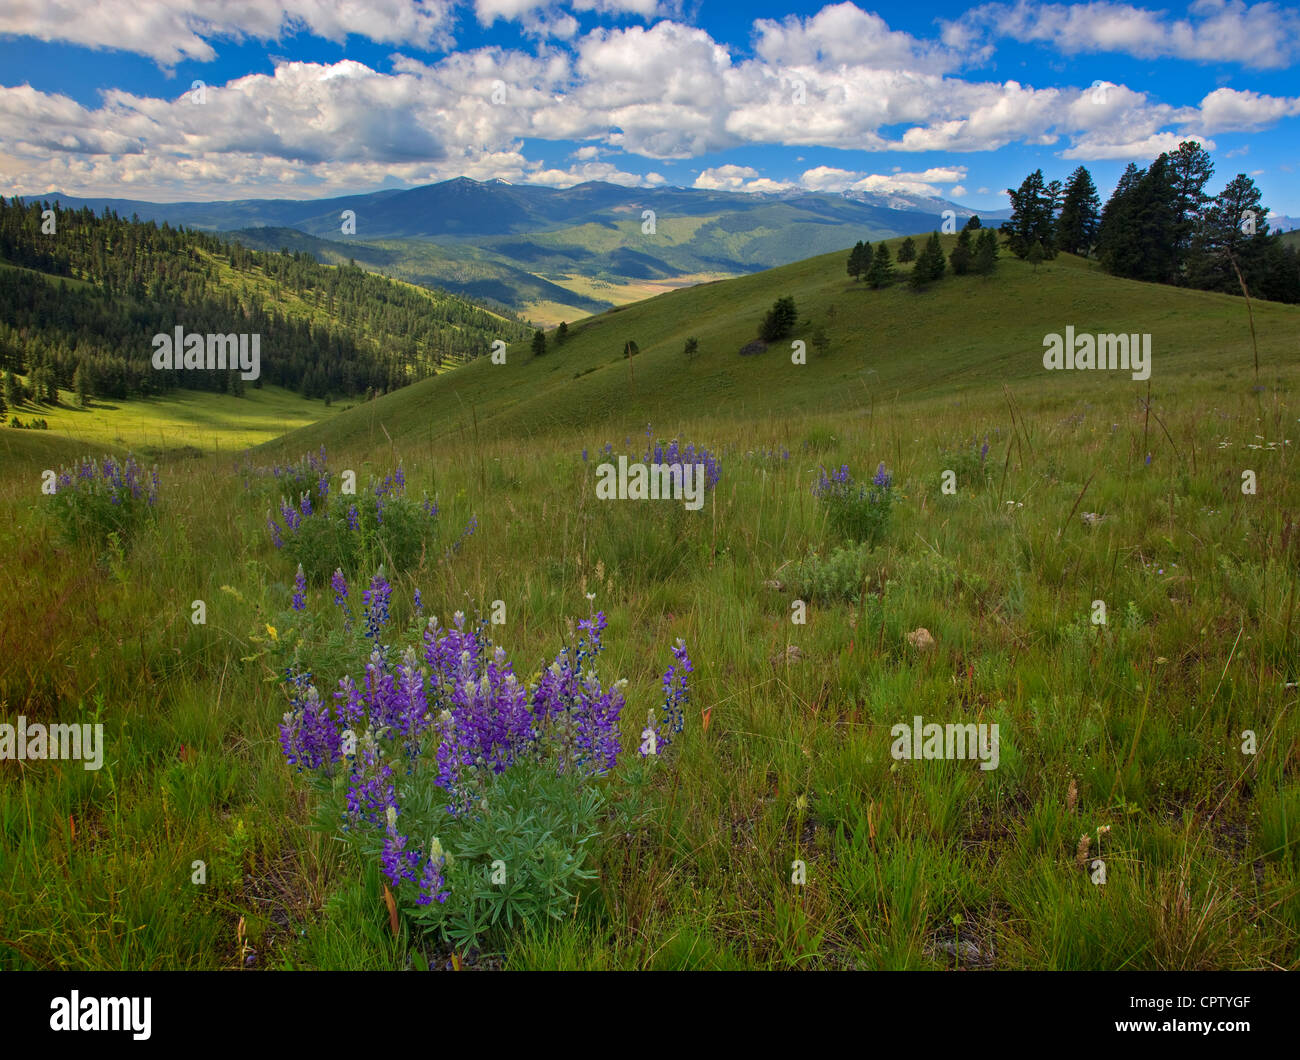 National Bison Range Wildlife Refuge Rolling prairie hillsides with summer flowers under cumulus clouds - Stock Image